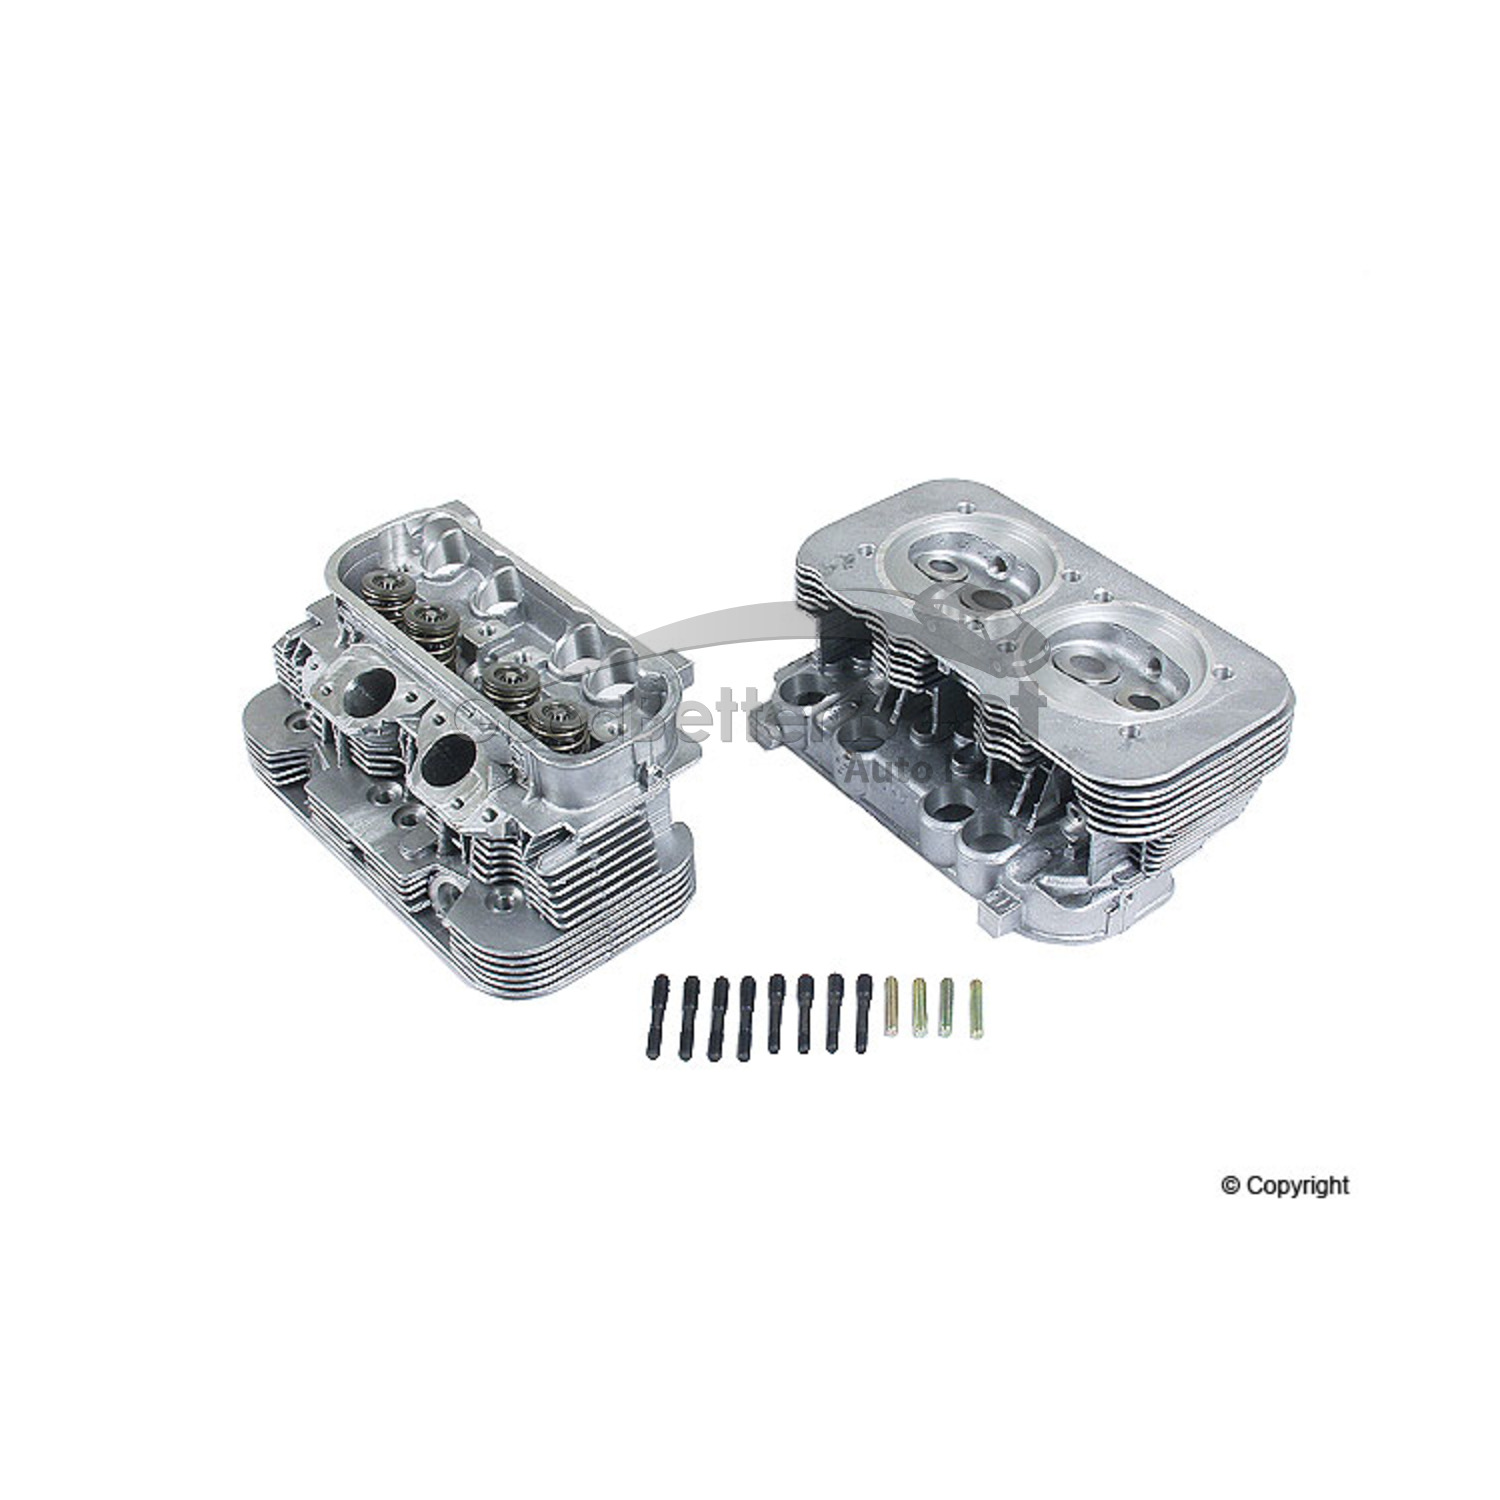 Details about One New AMC Engine Cylinder Head 910182 039101351K for  Volkswagen VW Transporter